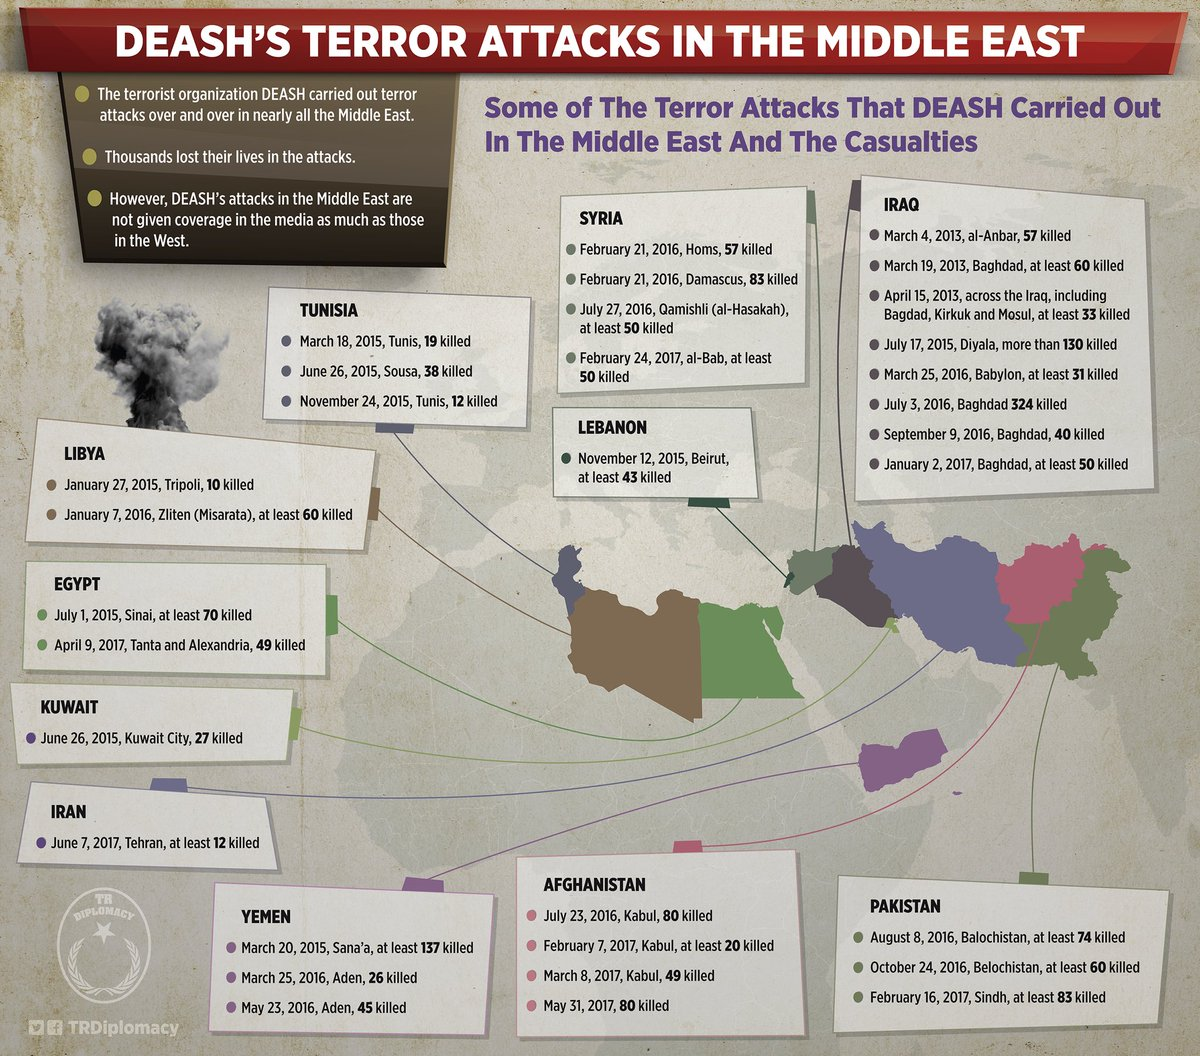 Terror attacks of DEASH in the Middle East